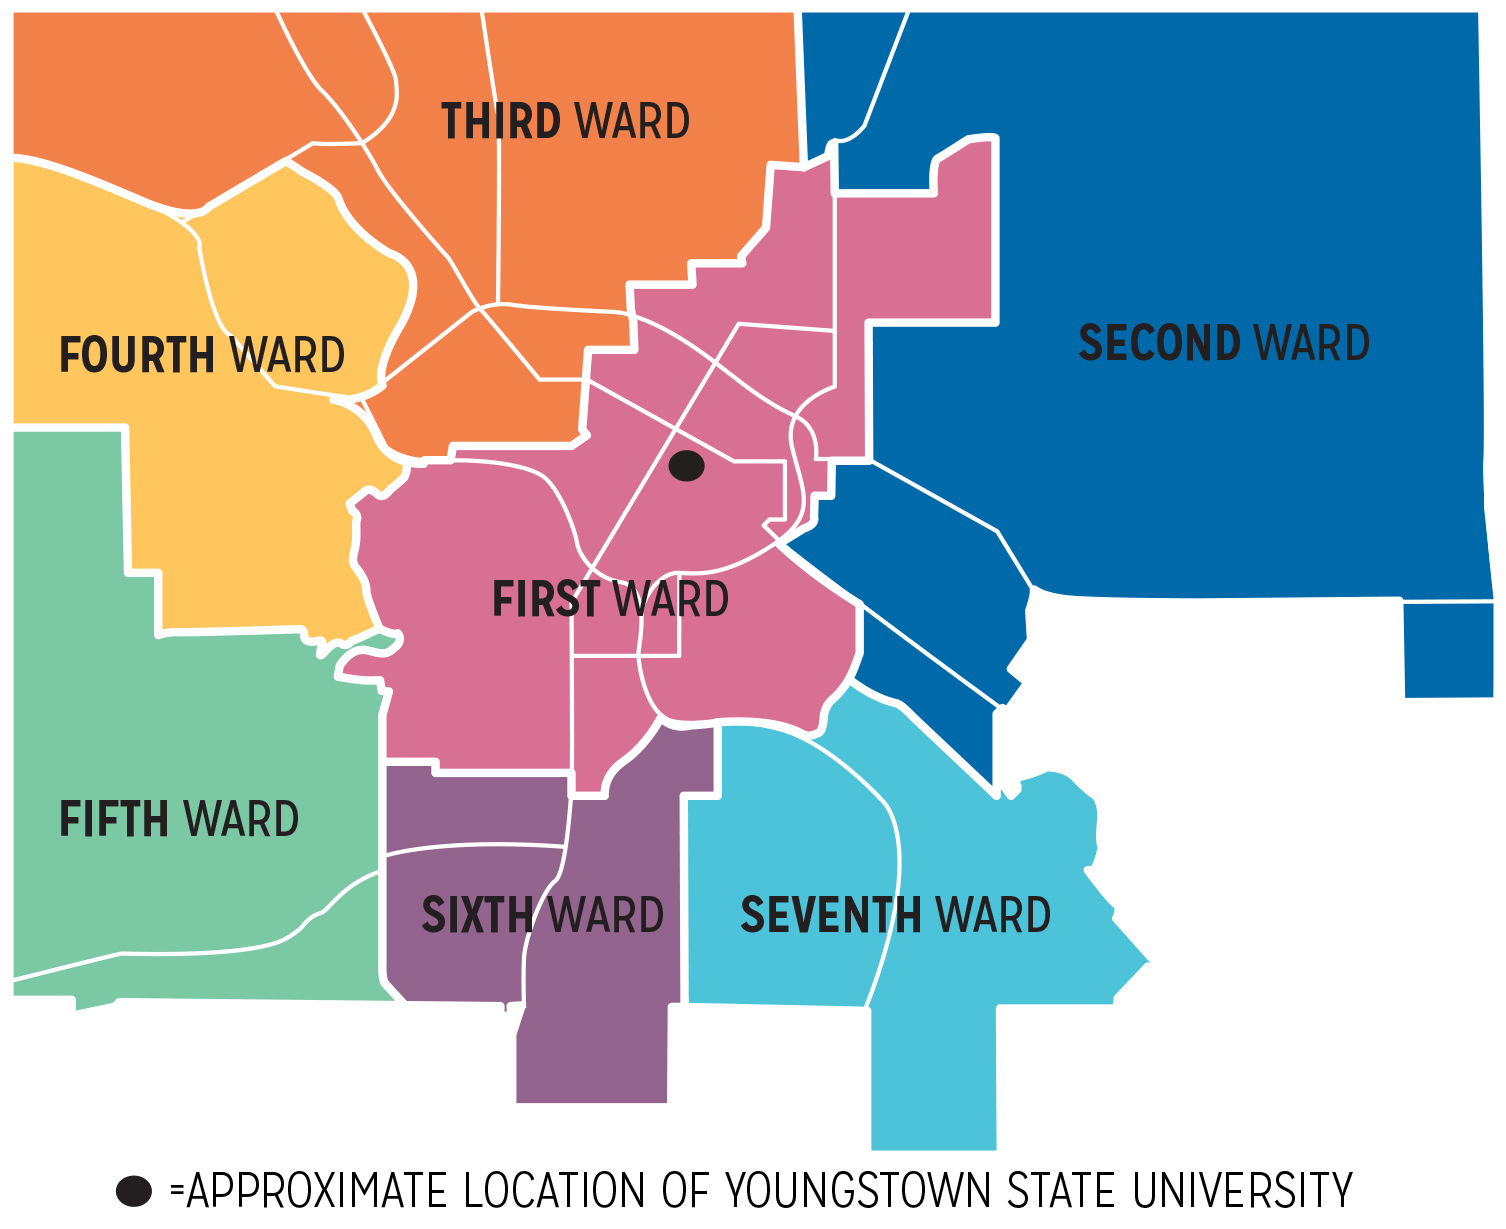 They Can Call it Gerrymandering if They Want To' New Districts Raise Youngstown State Map on chicago state map, lewiston state map, joliet state map, seattle state map, west roxbury va campus map, orlando state map, milwaukee state map, midwestern state university campus map, united states state map, montgomery state map, cleveland state map, tampa state map, fayetteville state university campus map, savannah state university campus map, kenosha state map, webster state map, morgan state map, albany state map, terre haute state map, scranton state map,